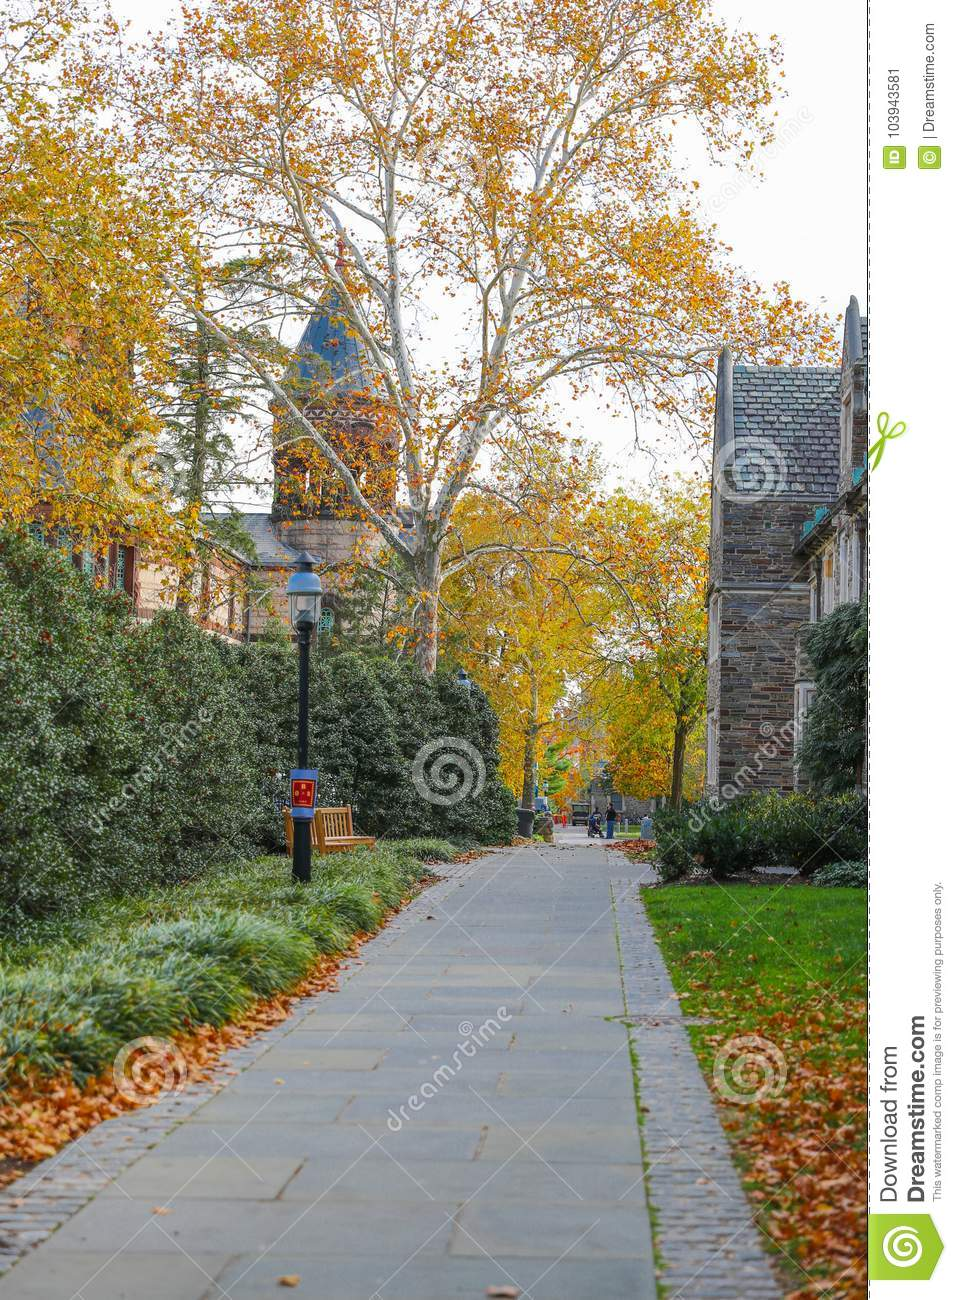 Princeton University is a Private Ivy League University in New Jersey, USA.